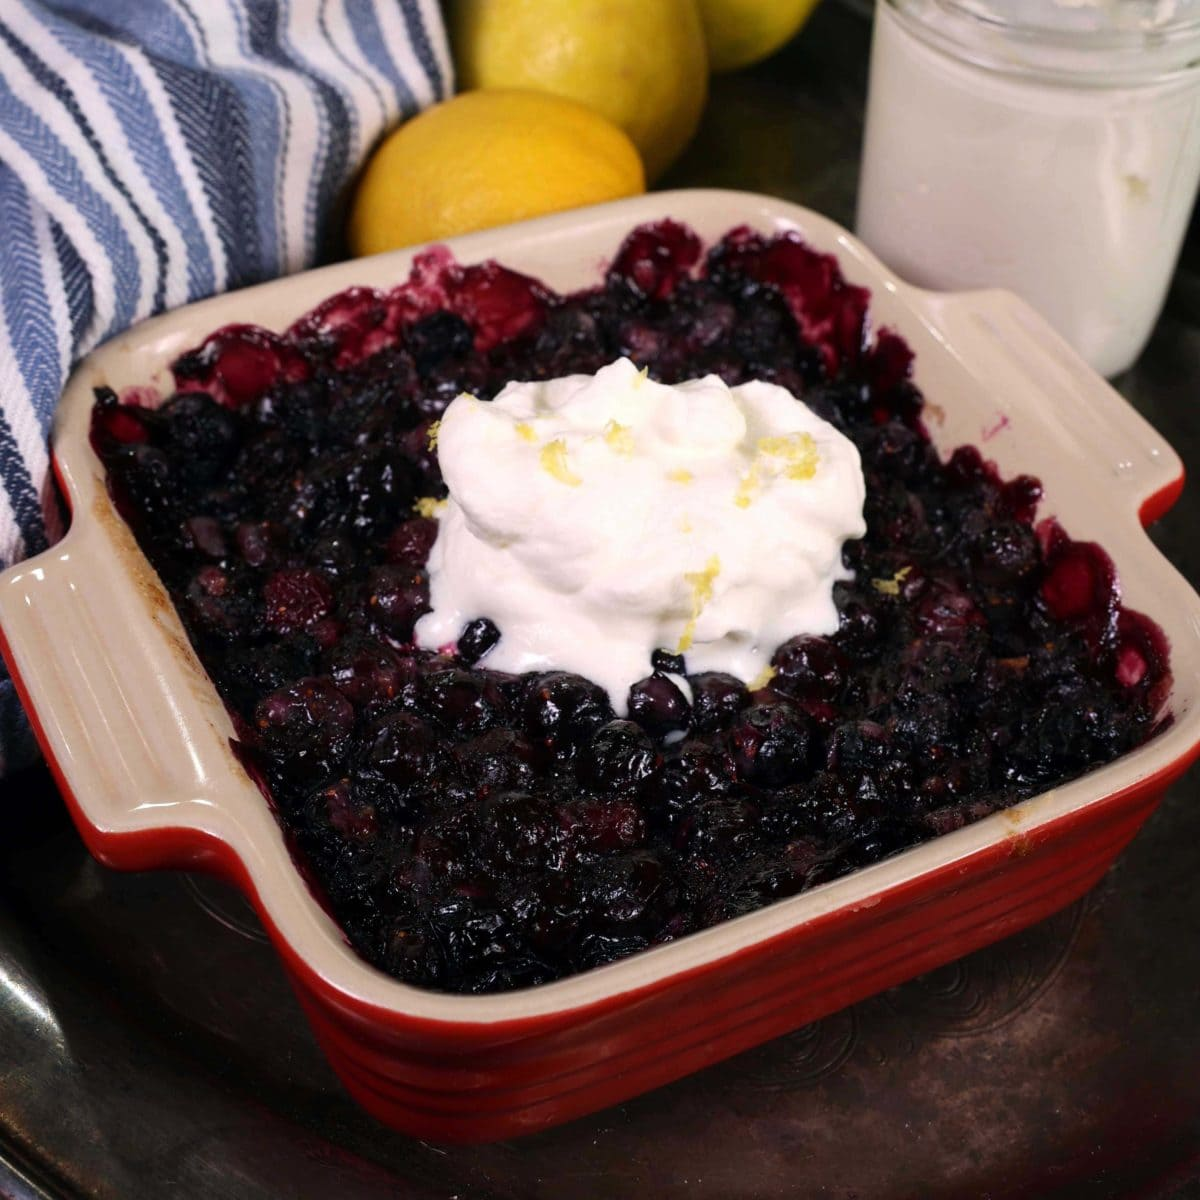 an open faced blueberry pie in a red baking dish next to a blue and white kitchen towel and lemons